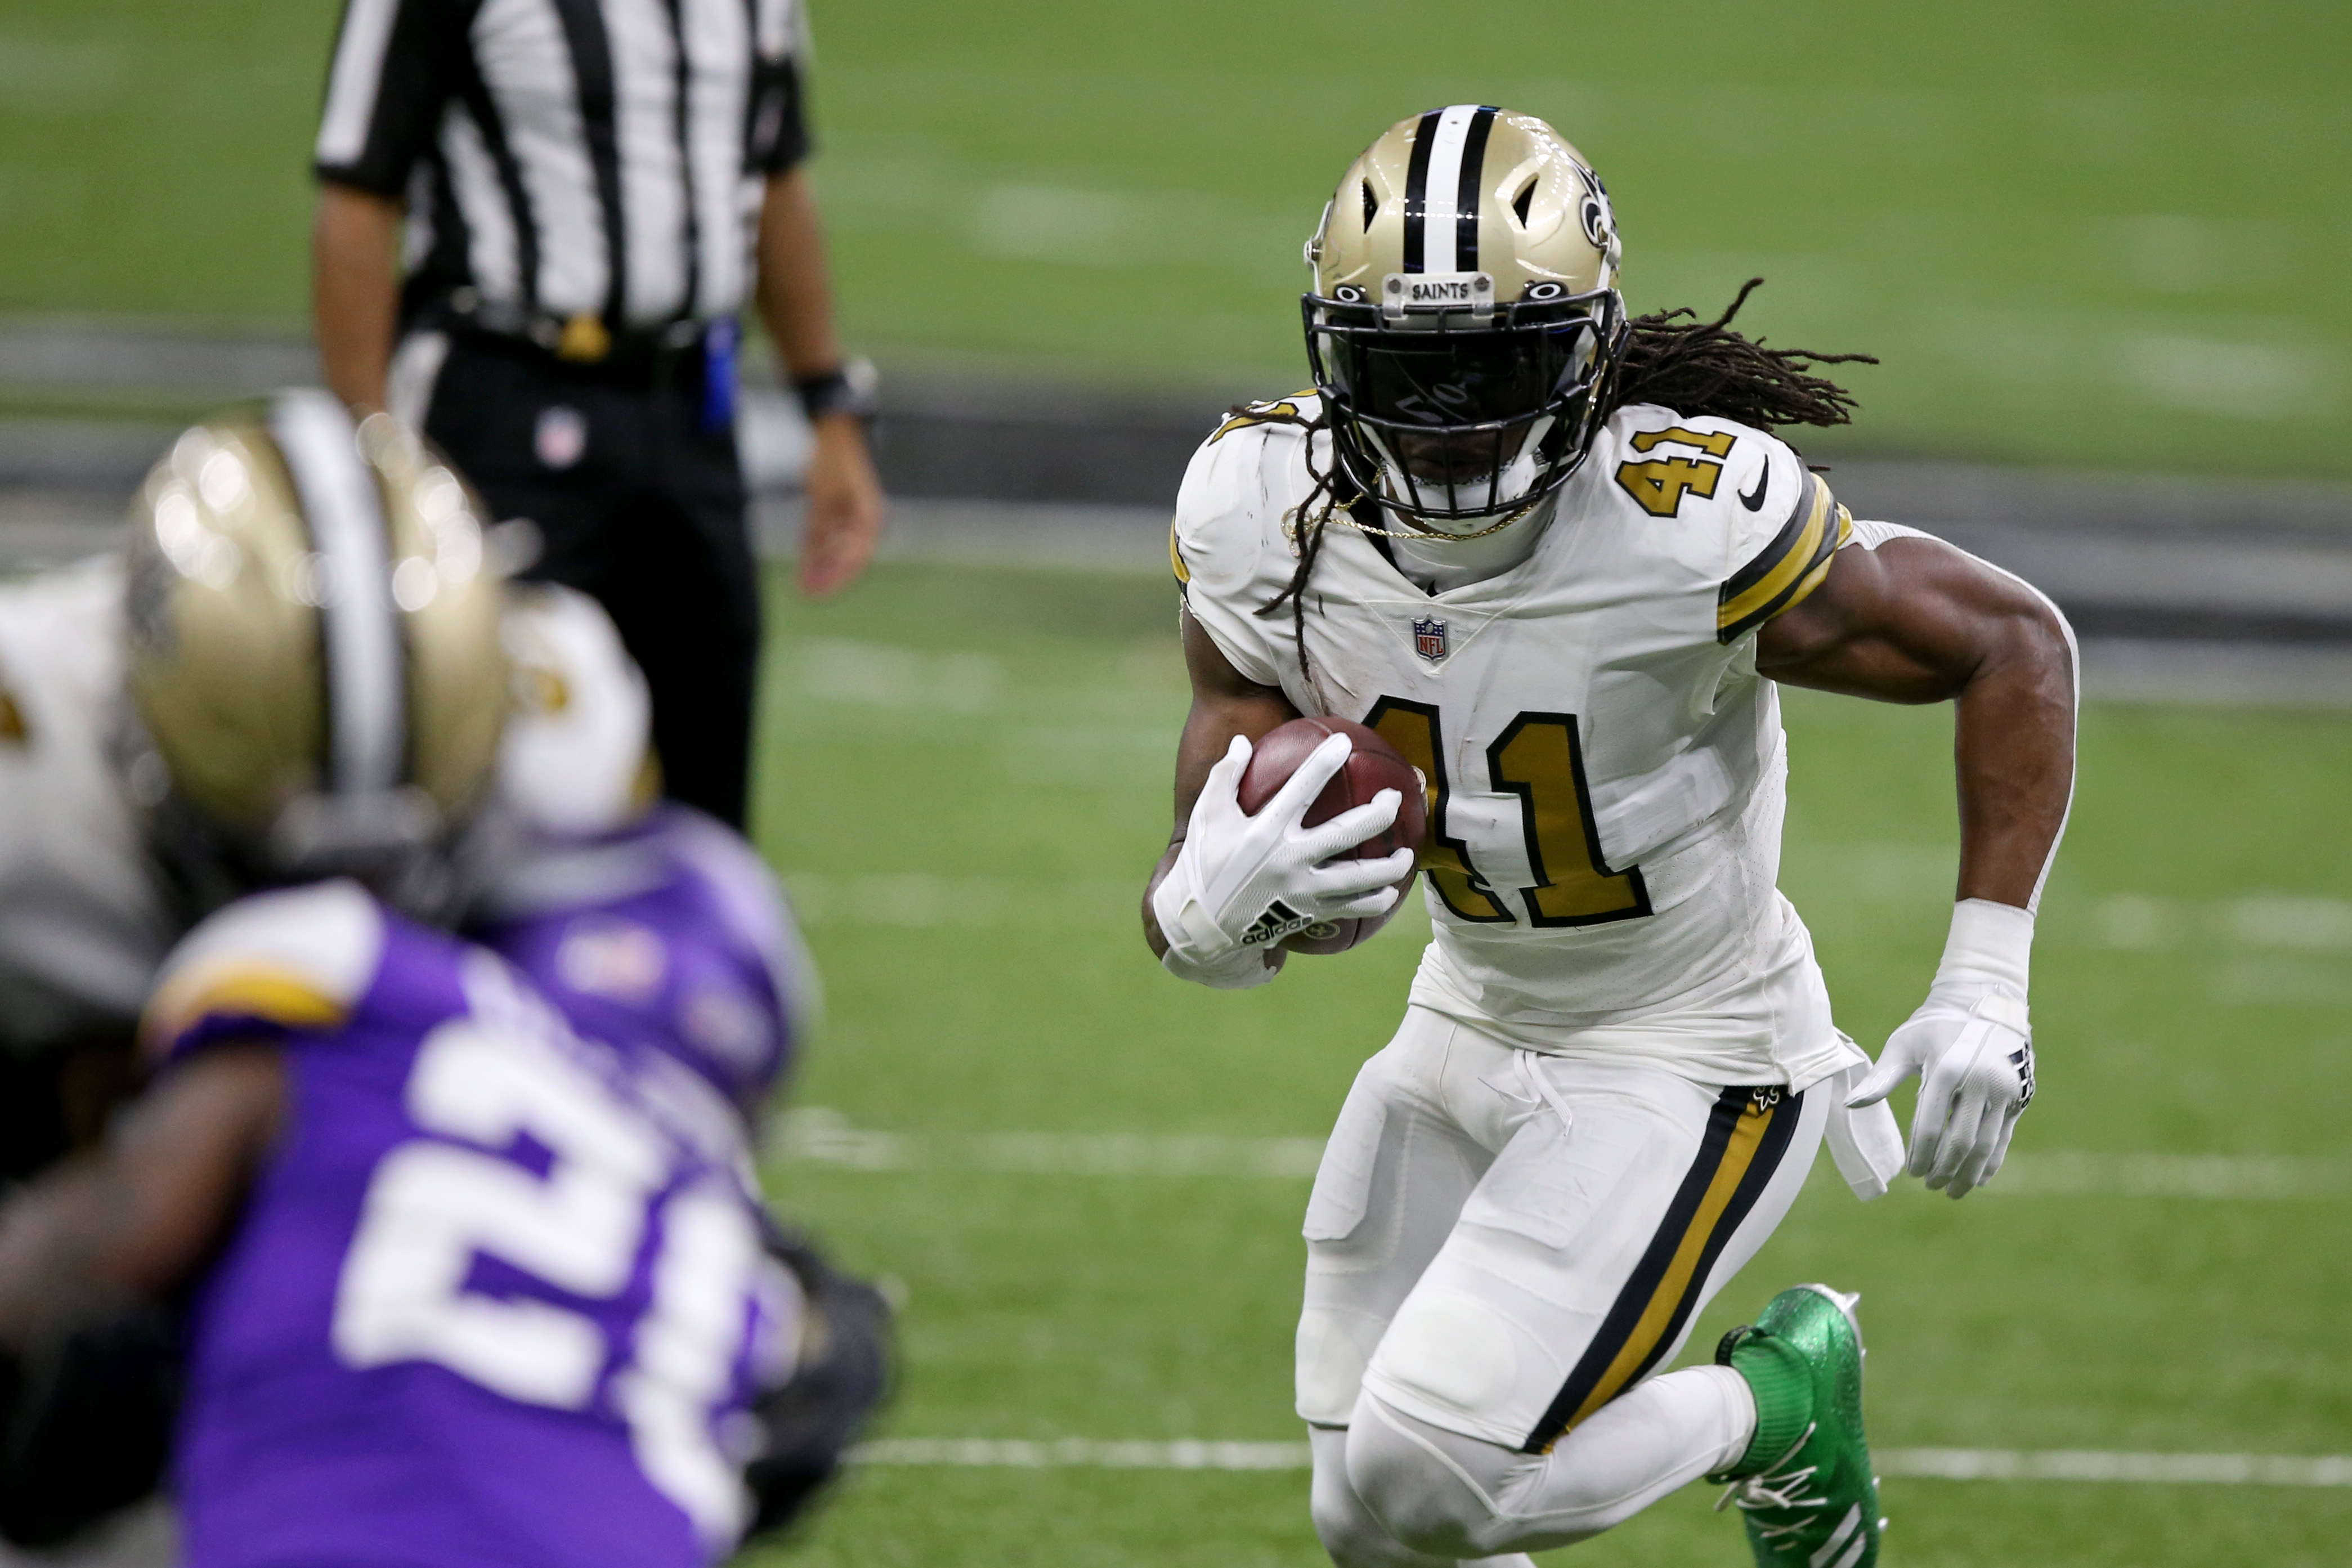 New Orleans Saints running back Alvin Kamara (41) runs against the Minnesota Vikings in the second quarter at the Mercedes-Benz Superdome.